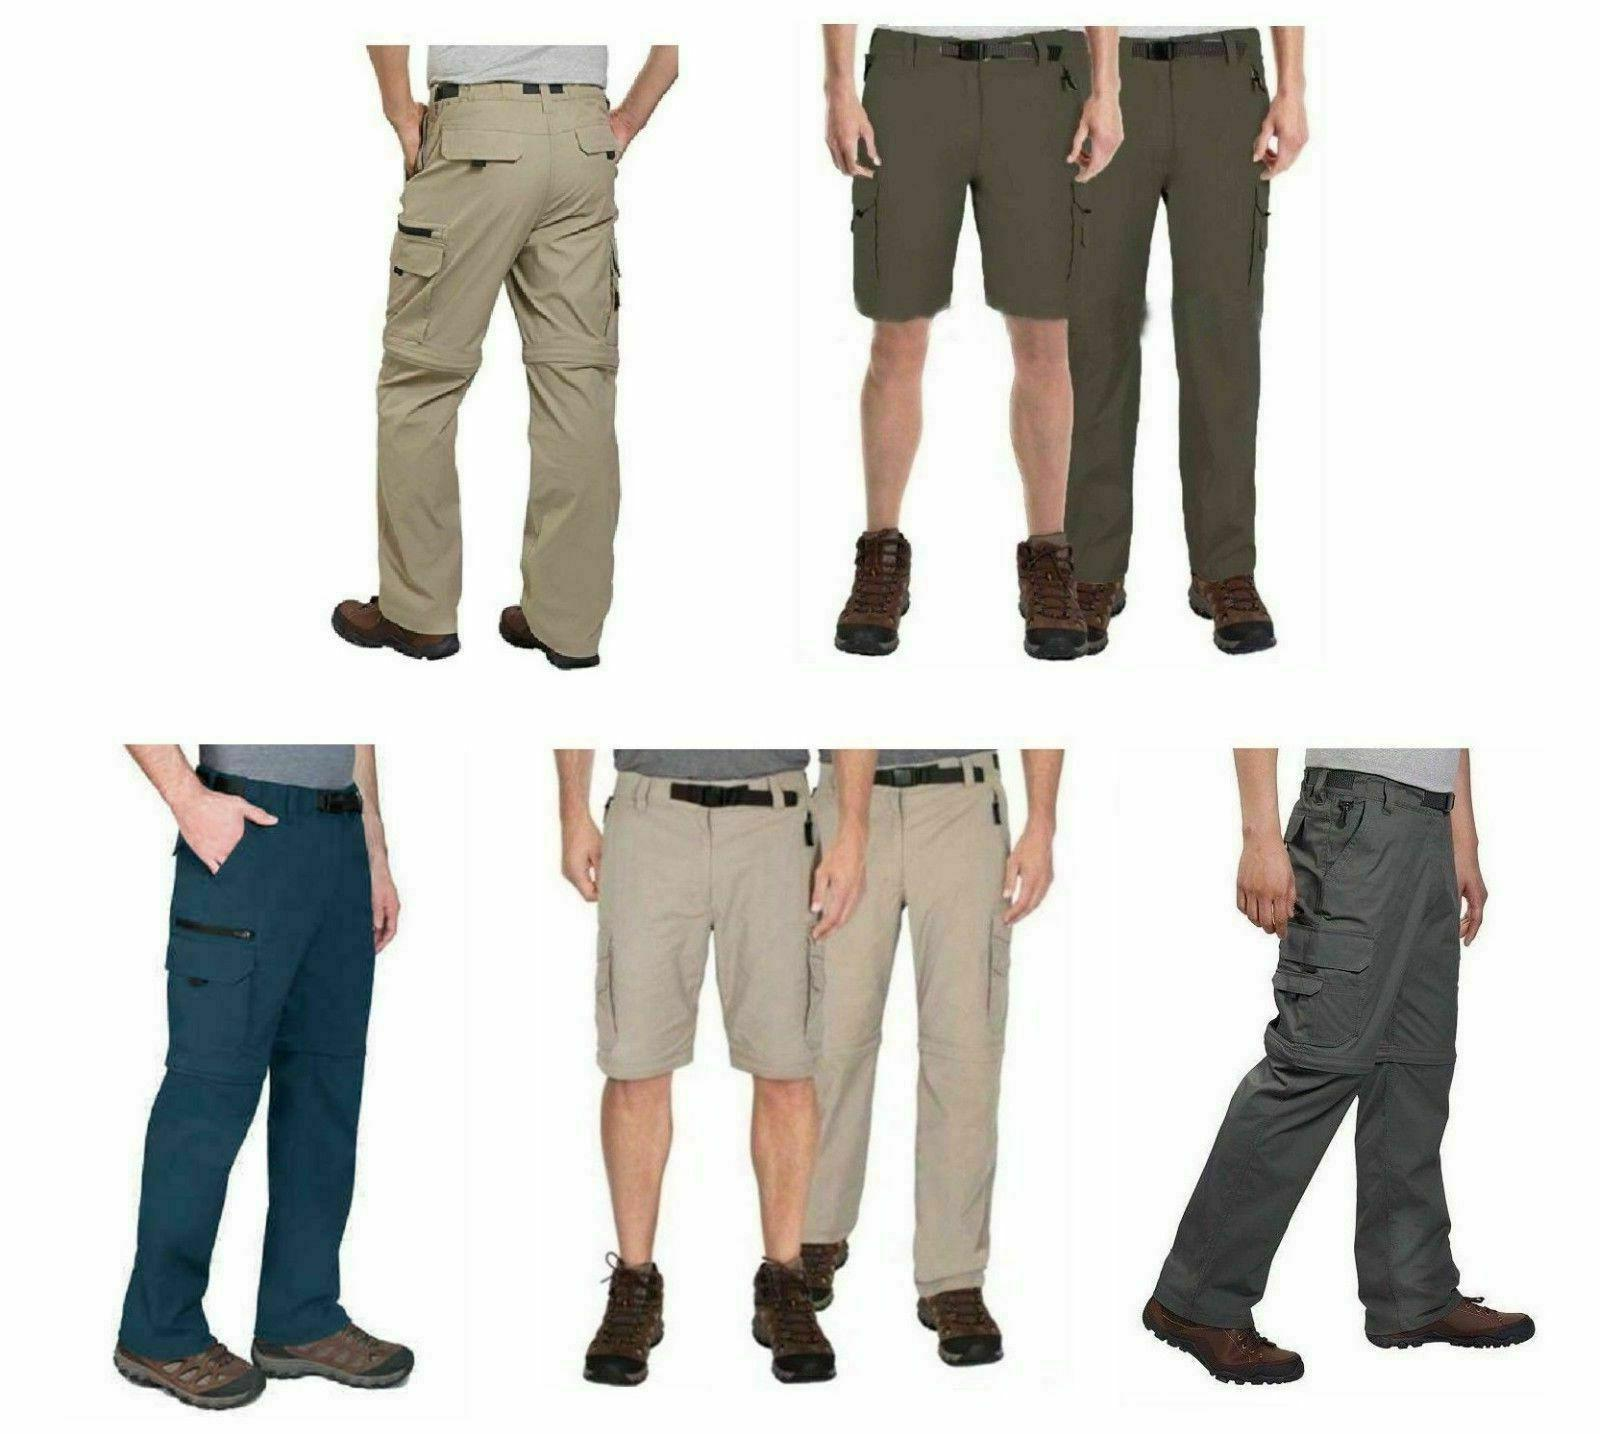 BC Clothing Men's Convertible Stretch Cargo Hiking Pants Poc